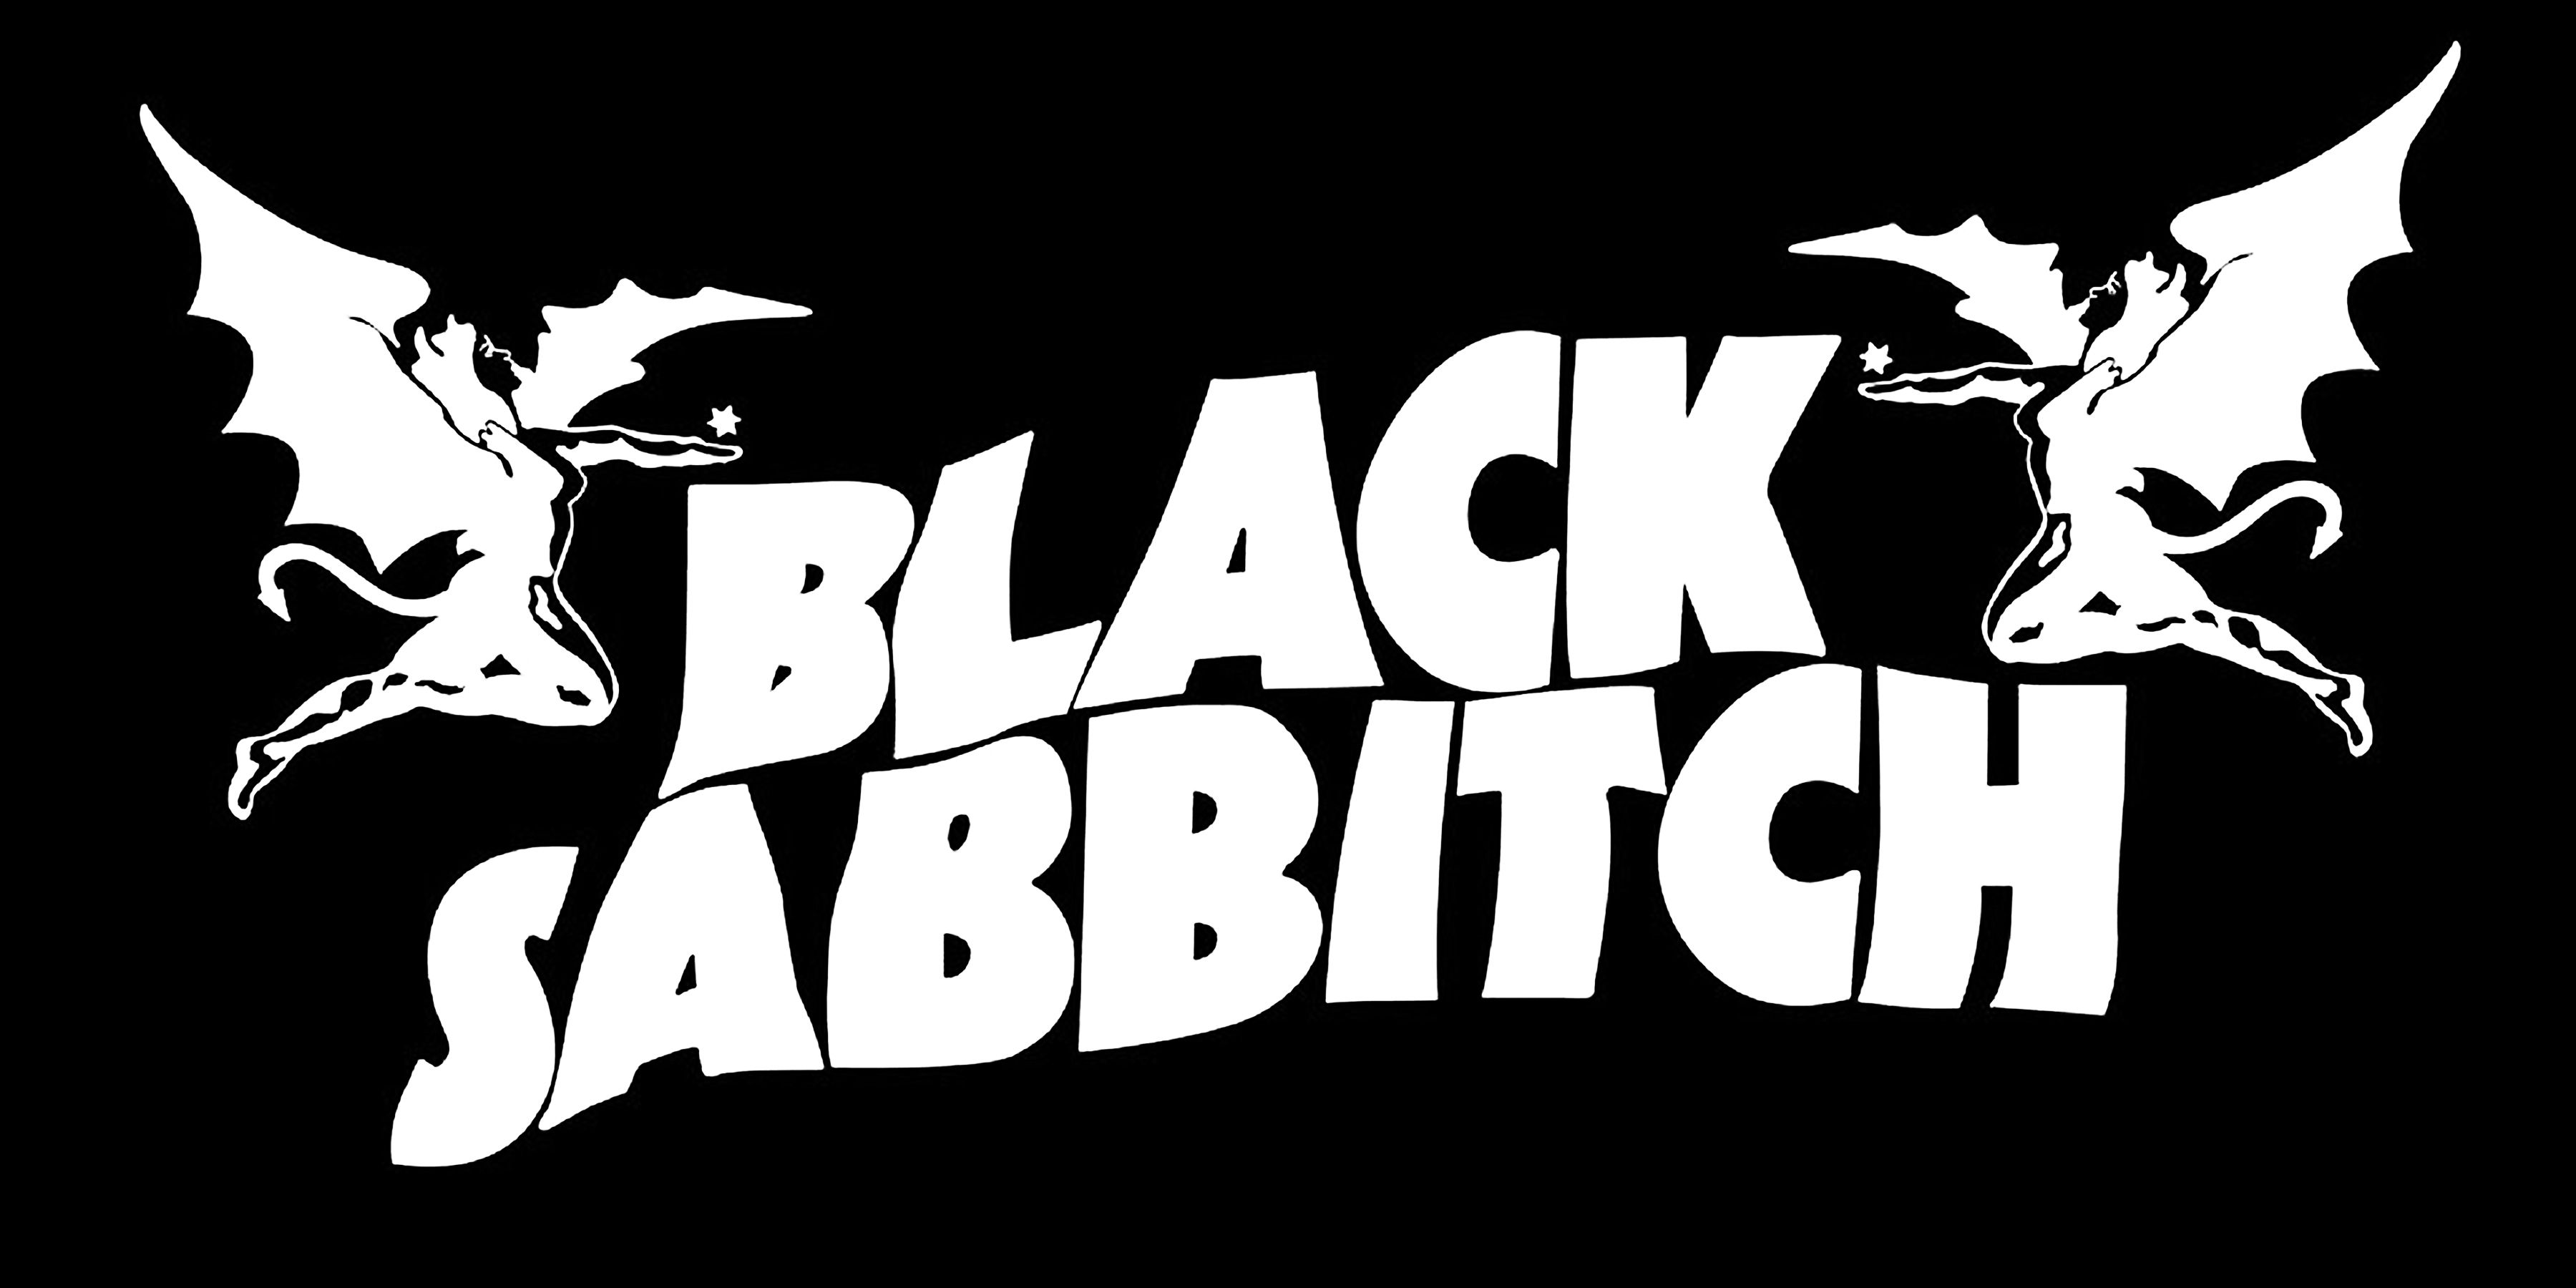 Black Sabbath Logo Vector Wallpaper Music That Matters